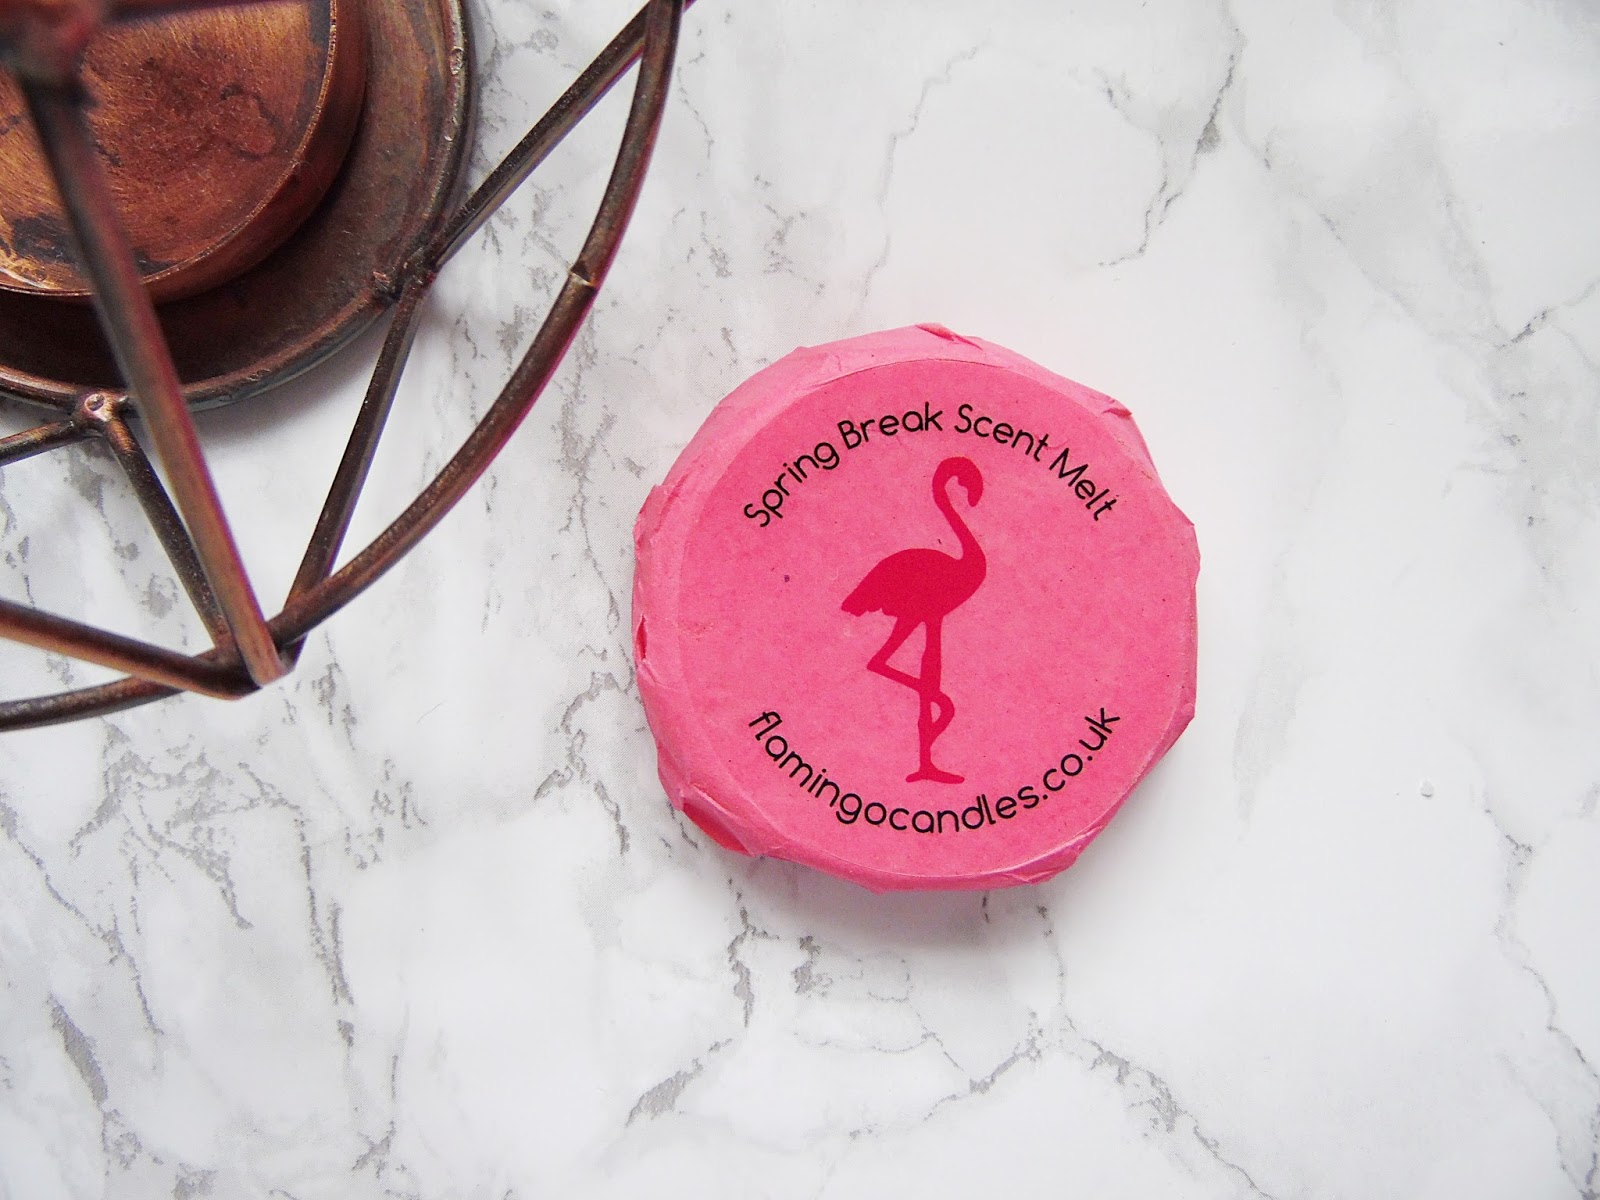 Flamingo Candles Spring Break Scent Melt